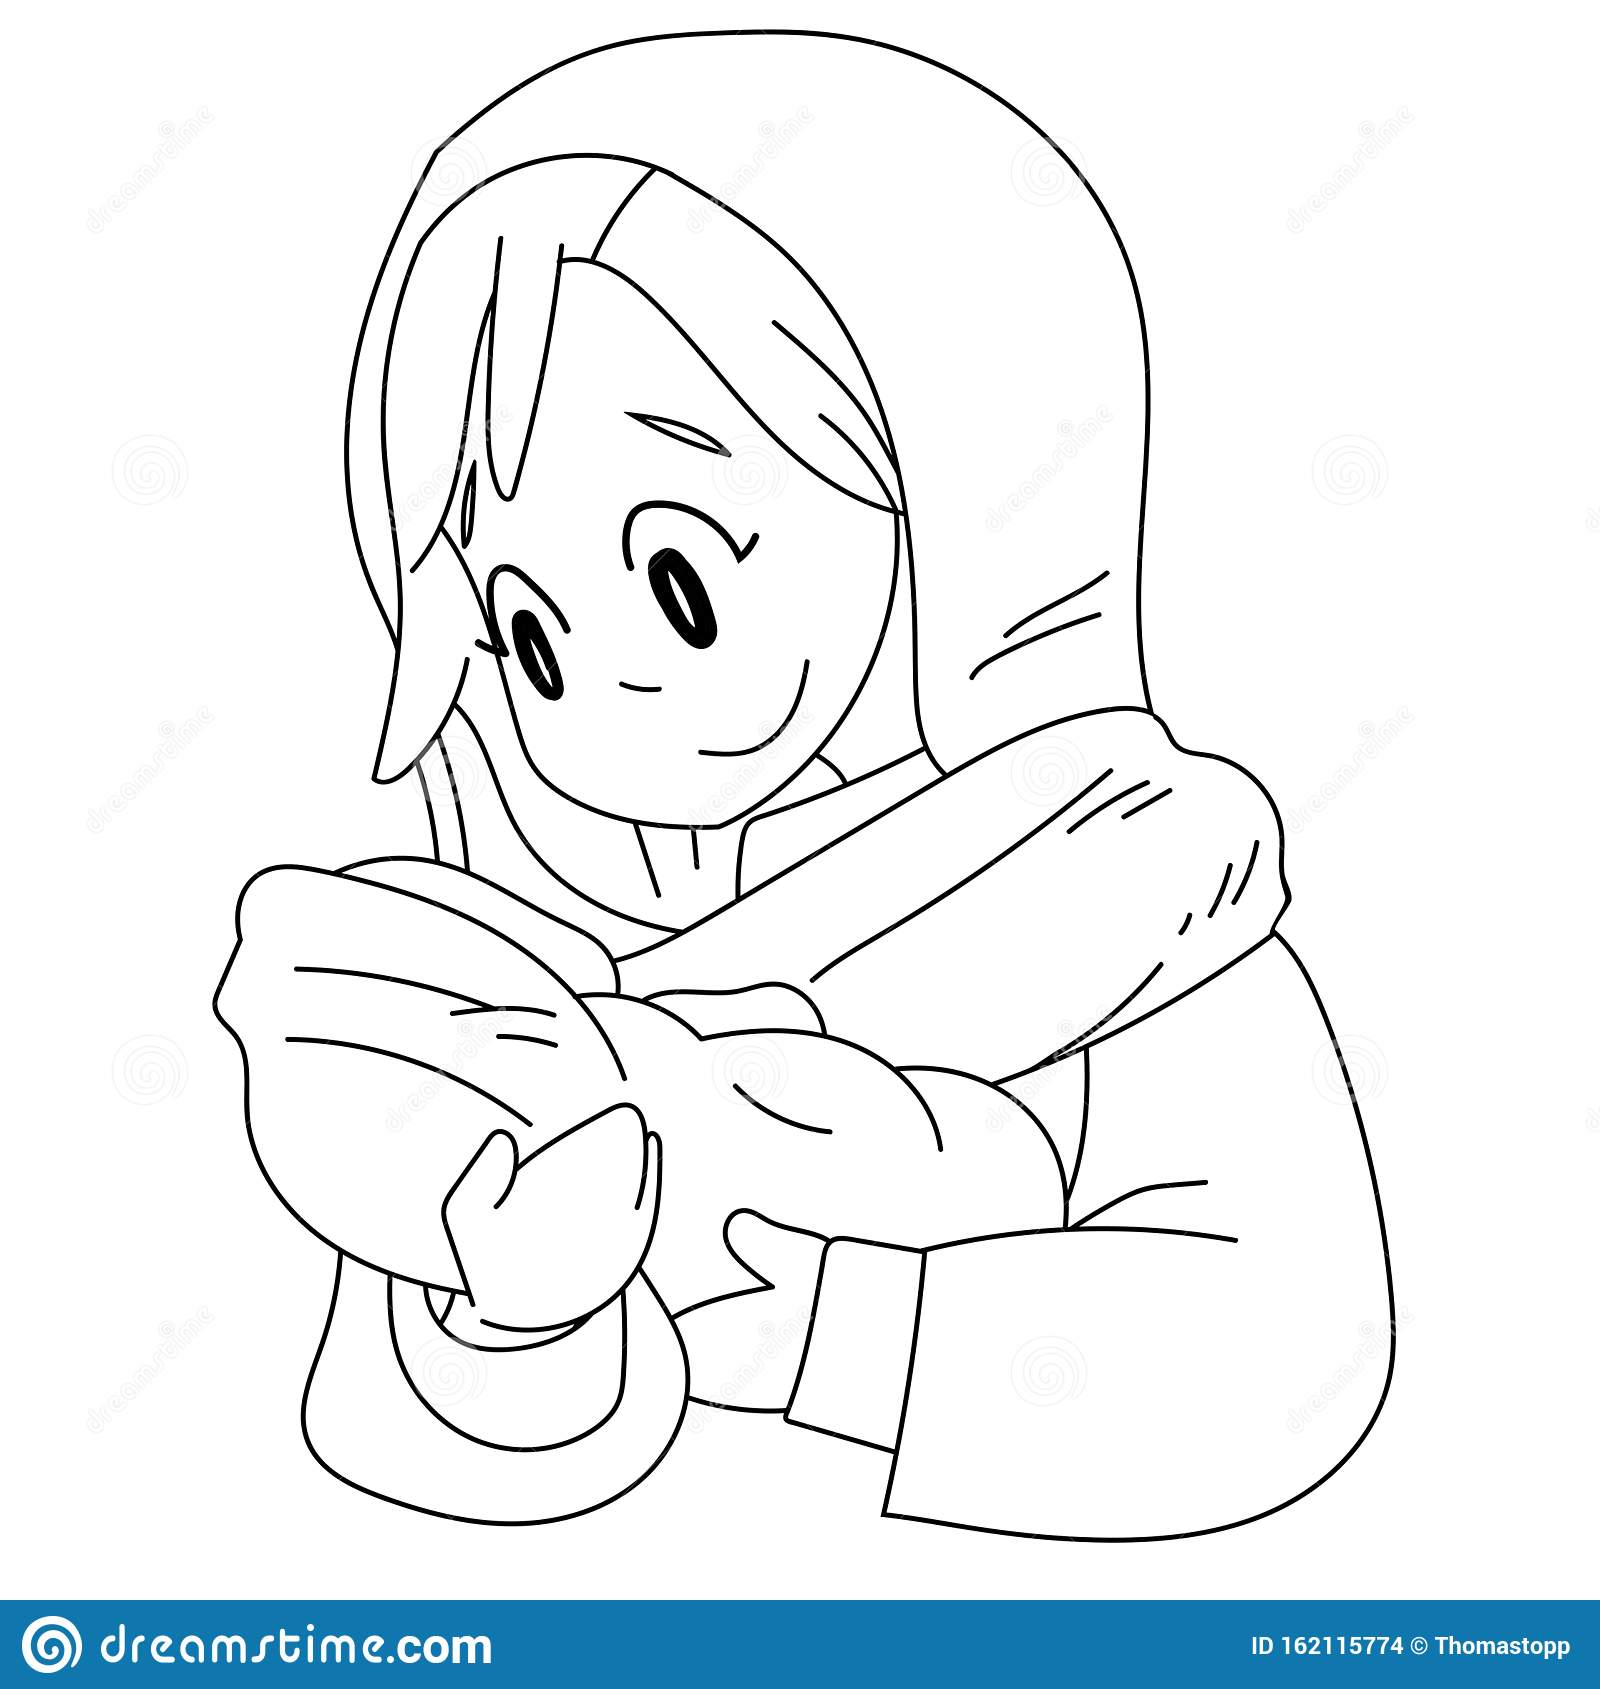 A Vector Cartoon Of Mary Holding Baby Jesus Coloring Page Stock Vector Illustration Of Christian Event 162115774